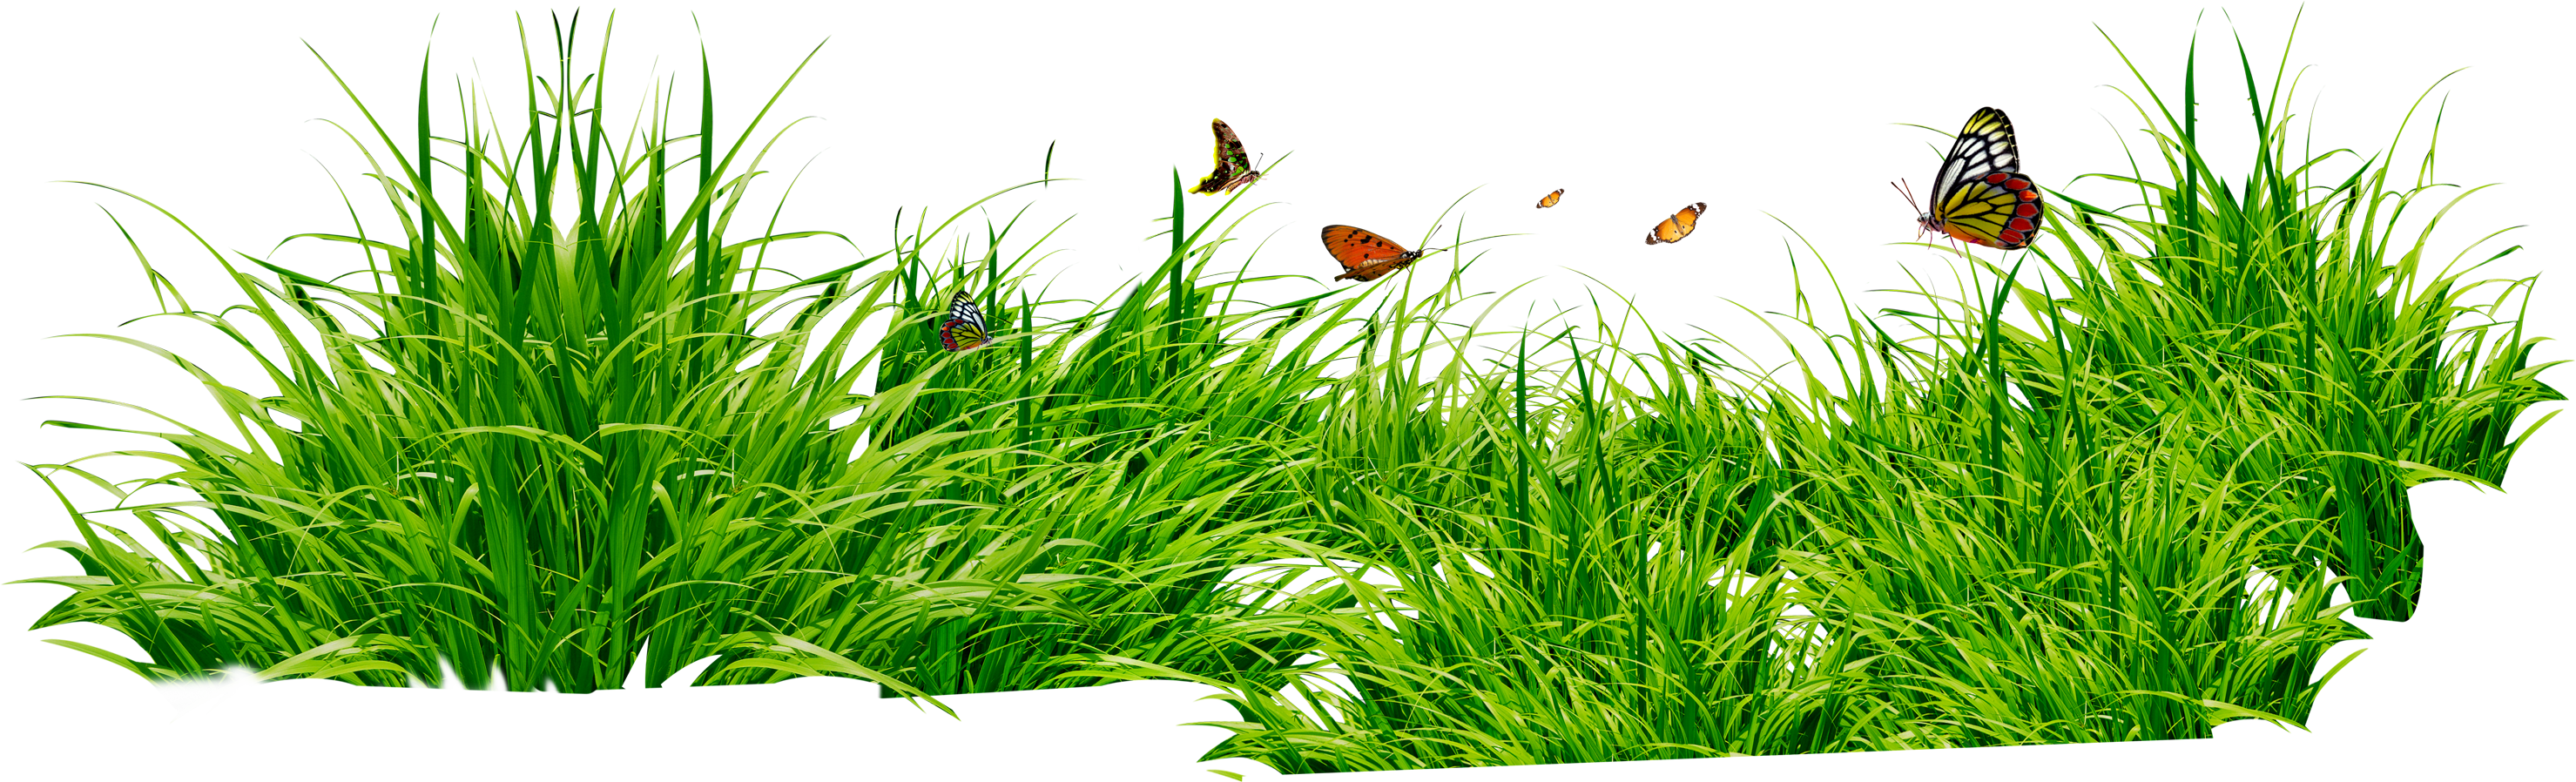 Grass Pictures Green Png image #44871